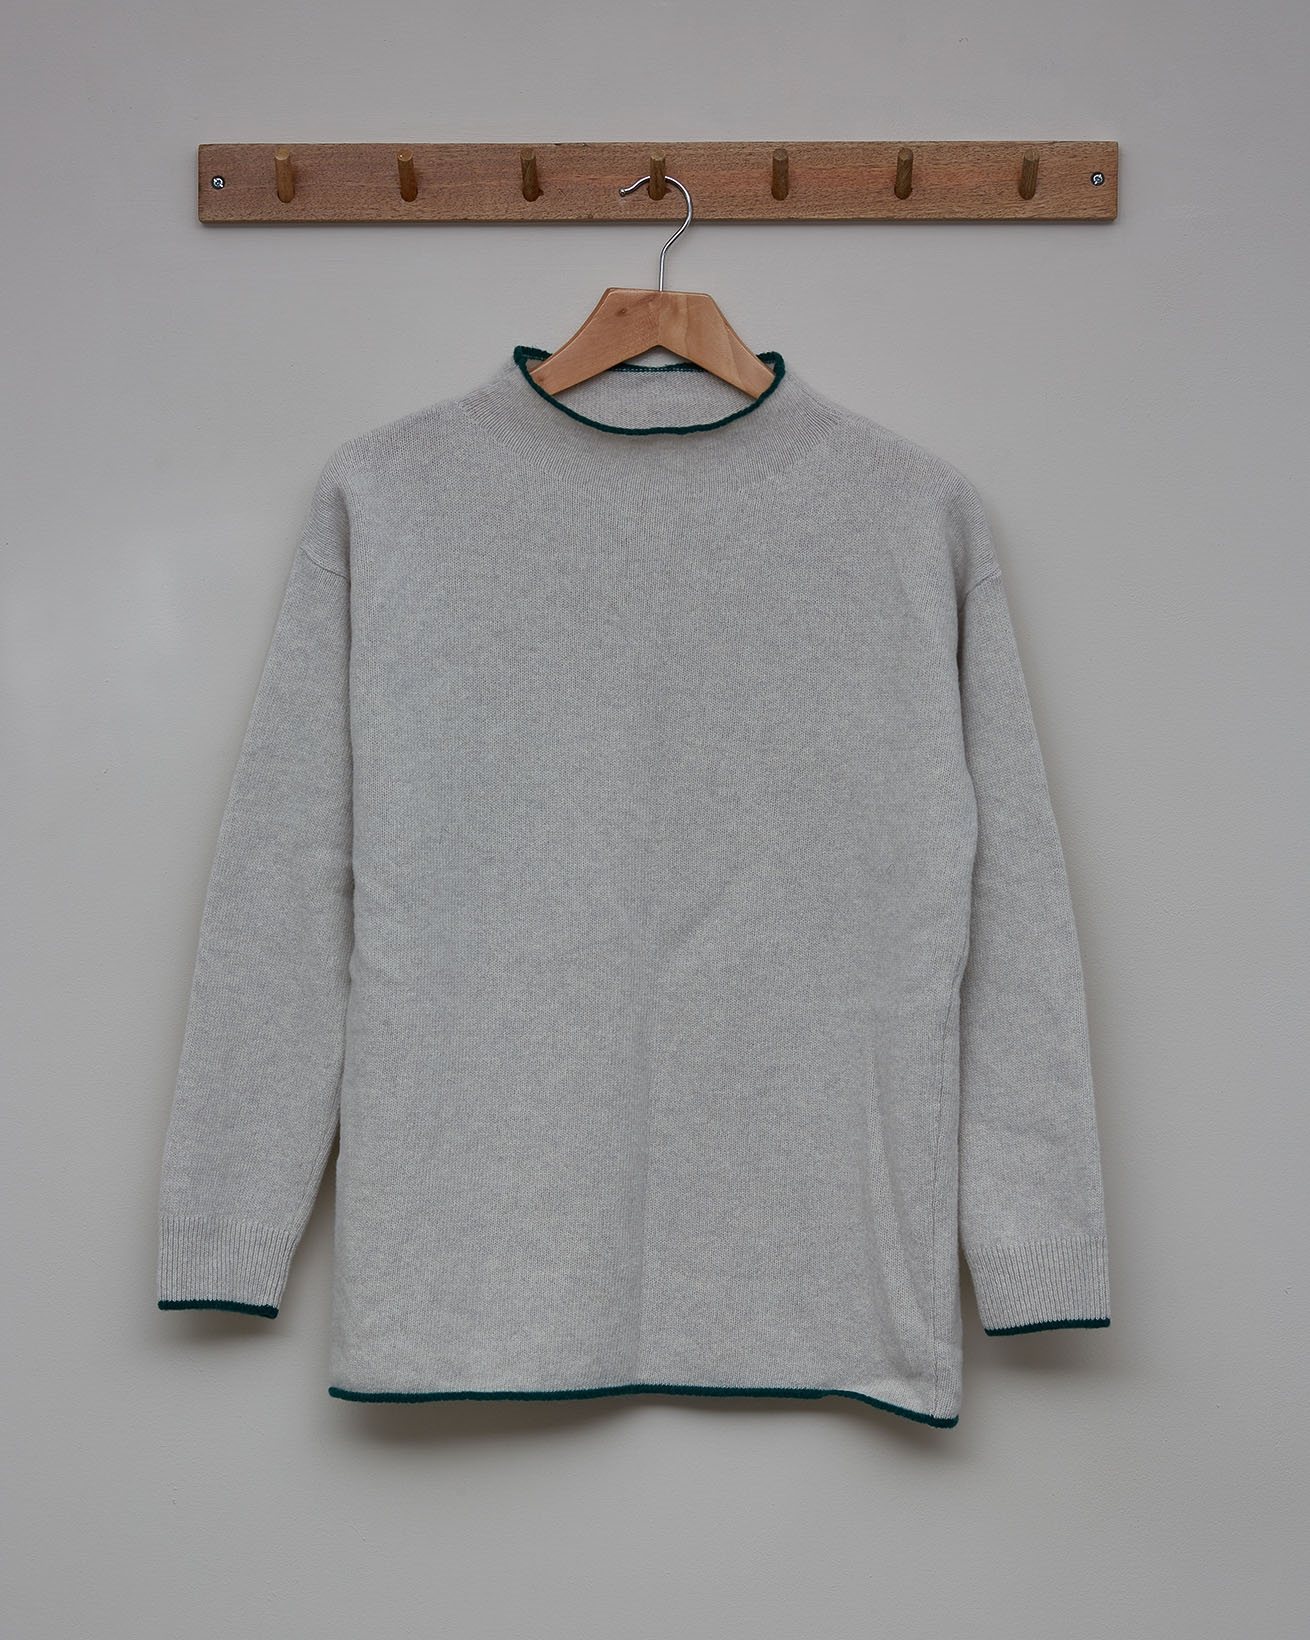 Felted Funnel Neck Jumper - Size Small - Fossil, Sea Green - 2354